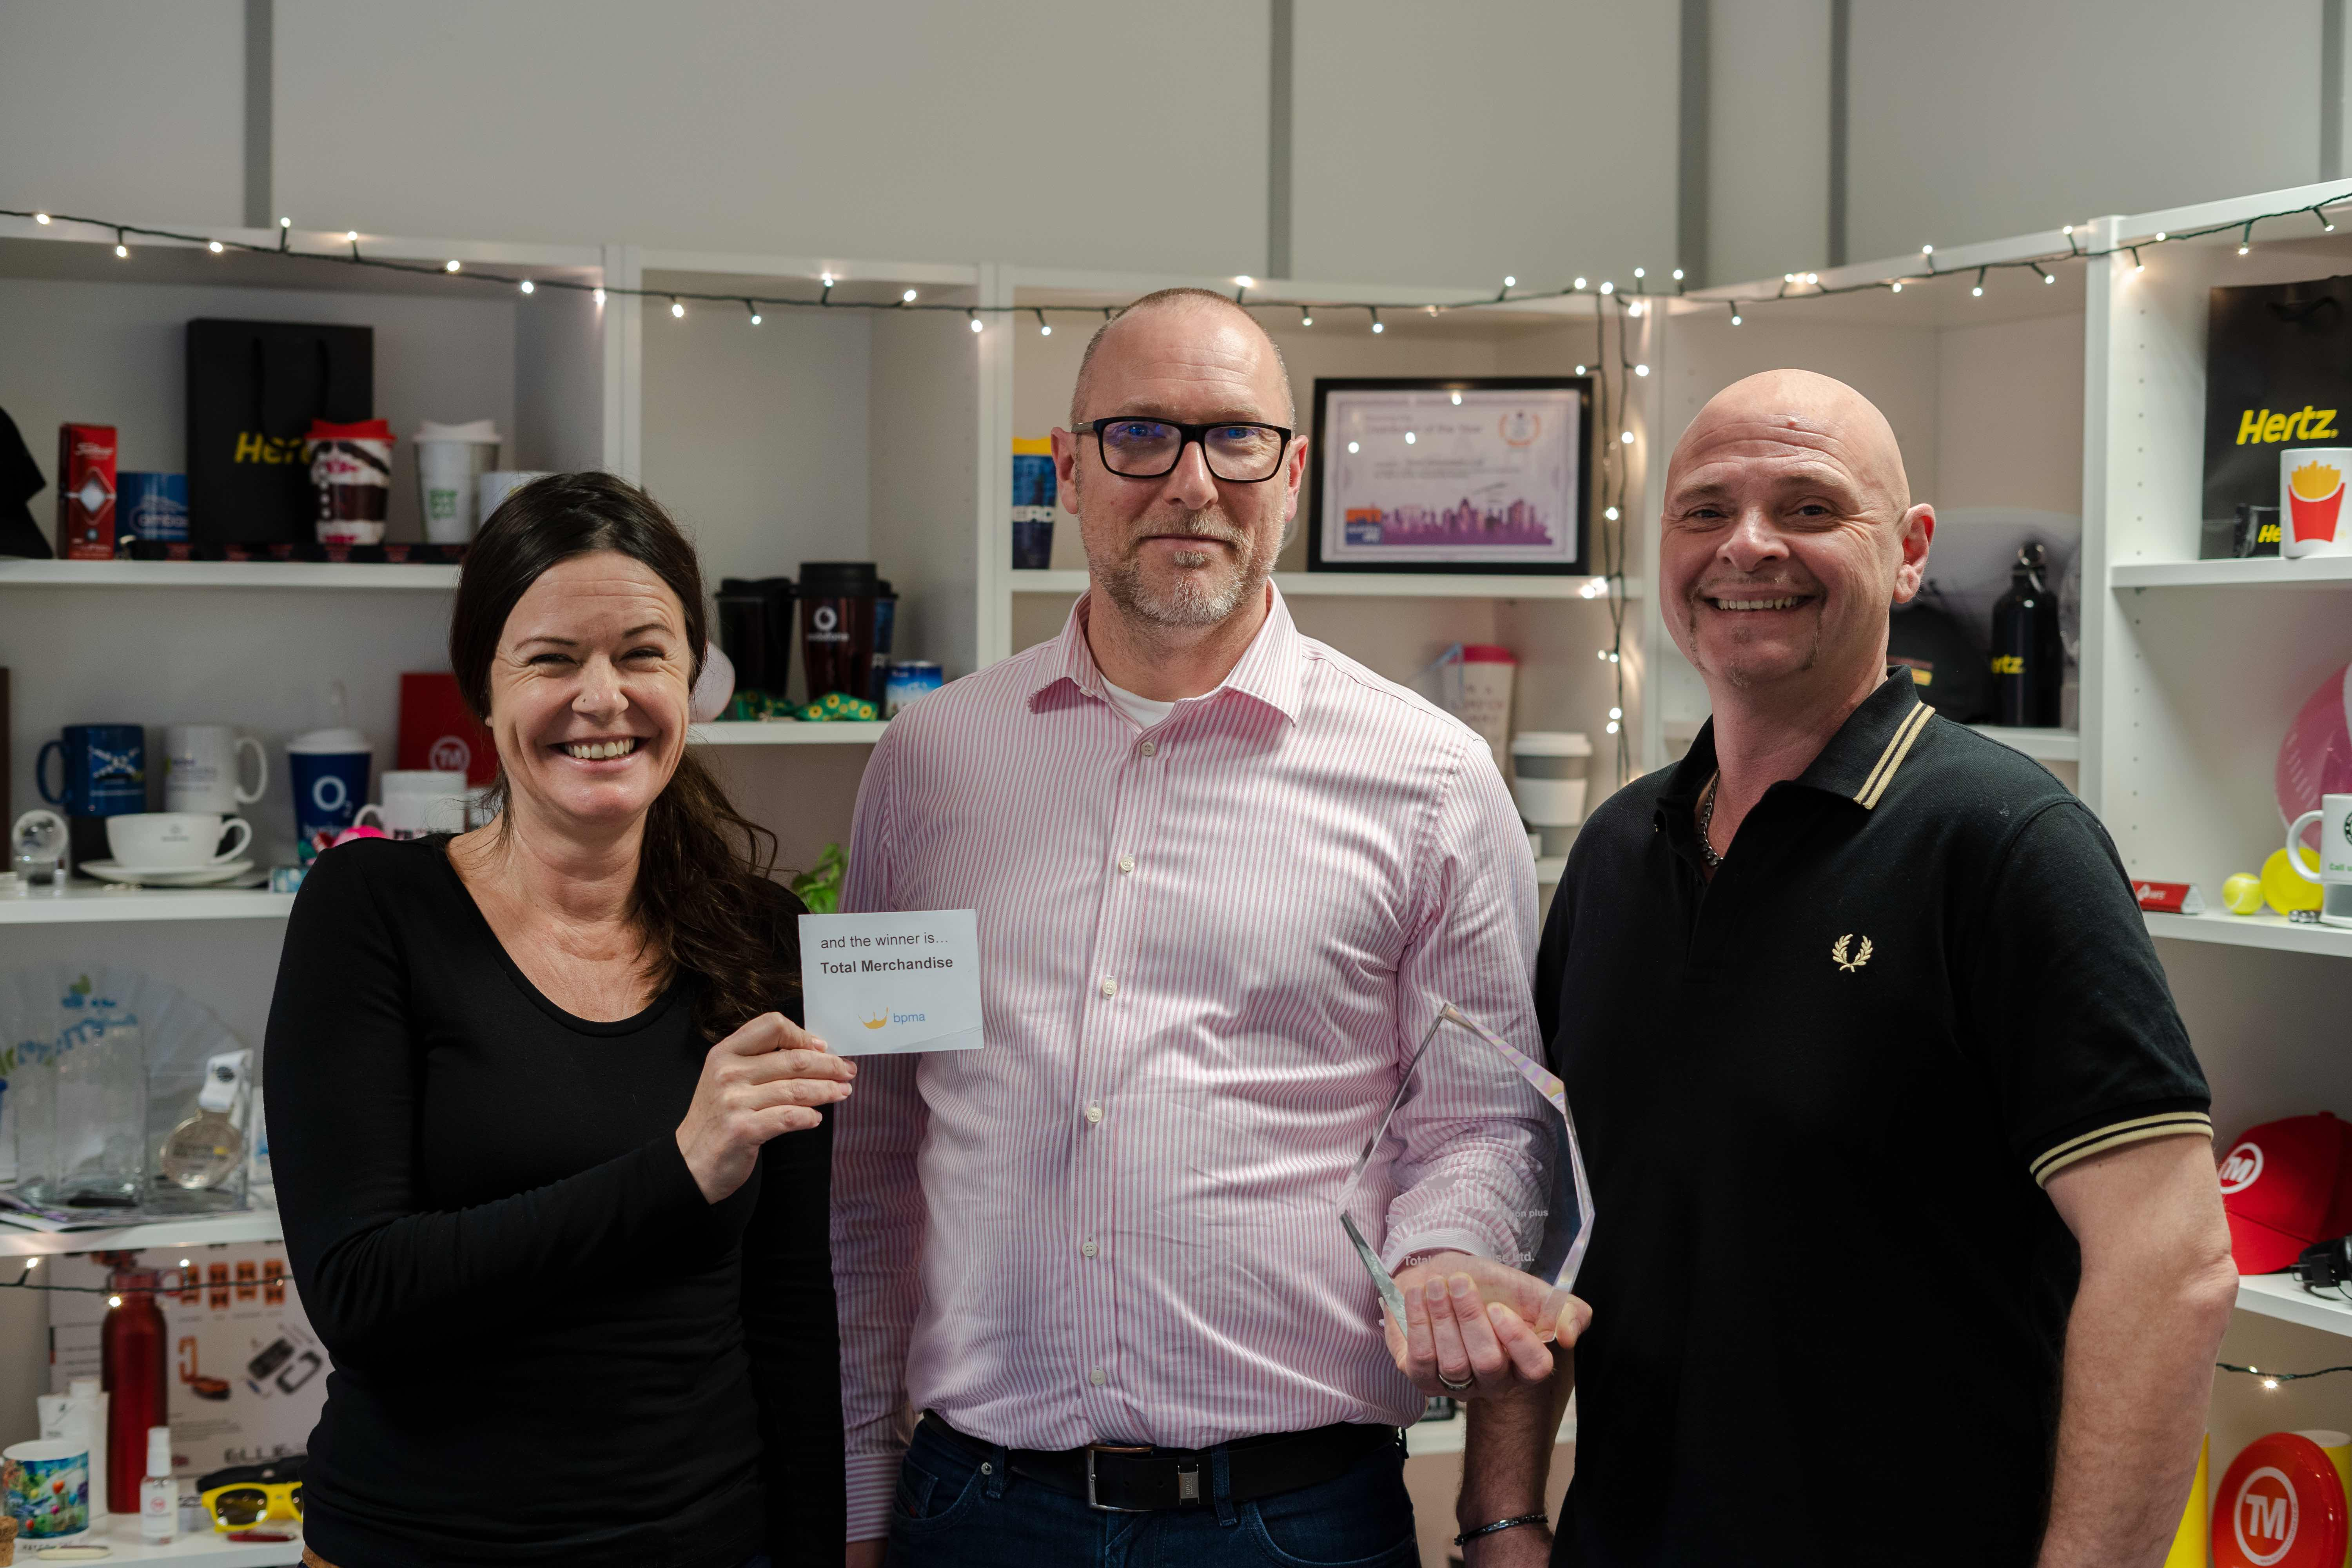 Total Merchandise founders Michelle Rae Stoddart, Jason O'Connor and David Stoddart